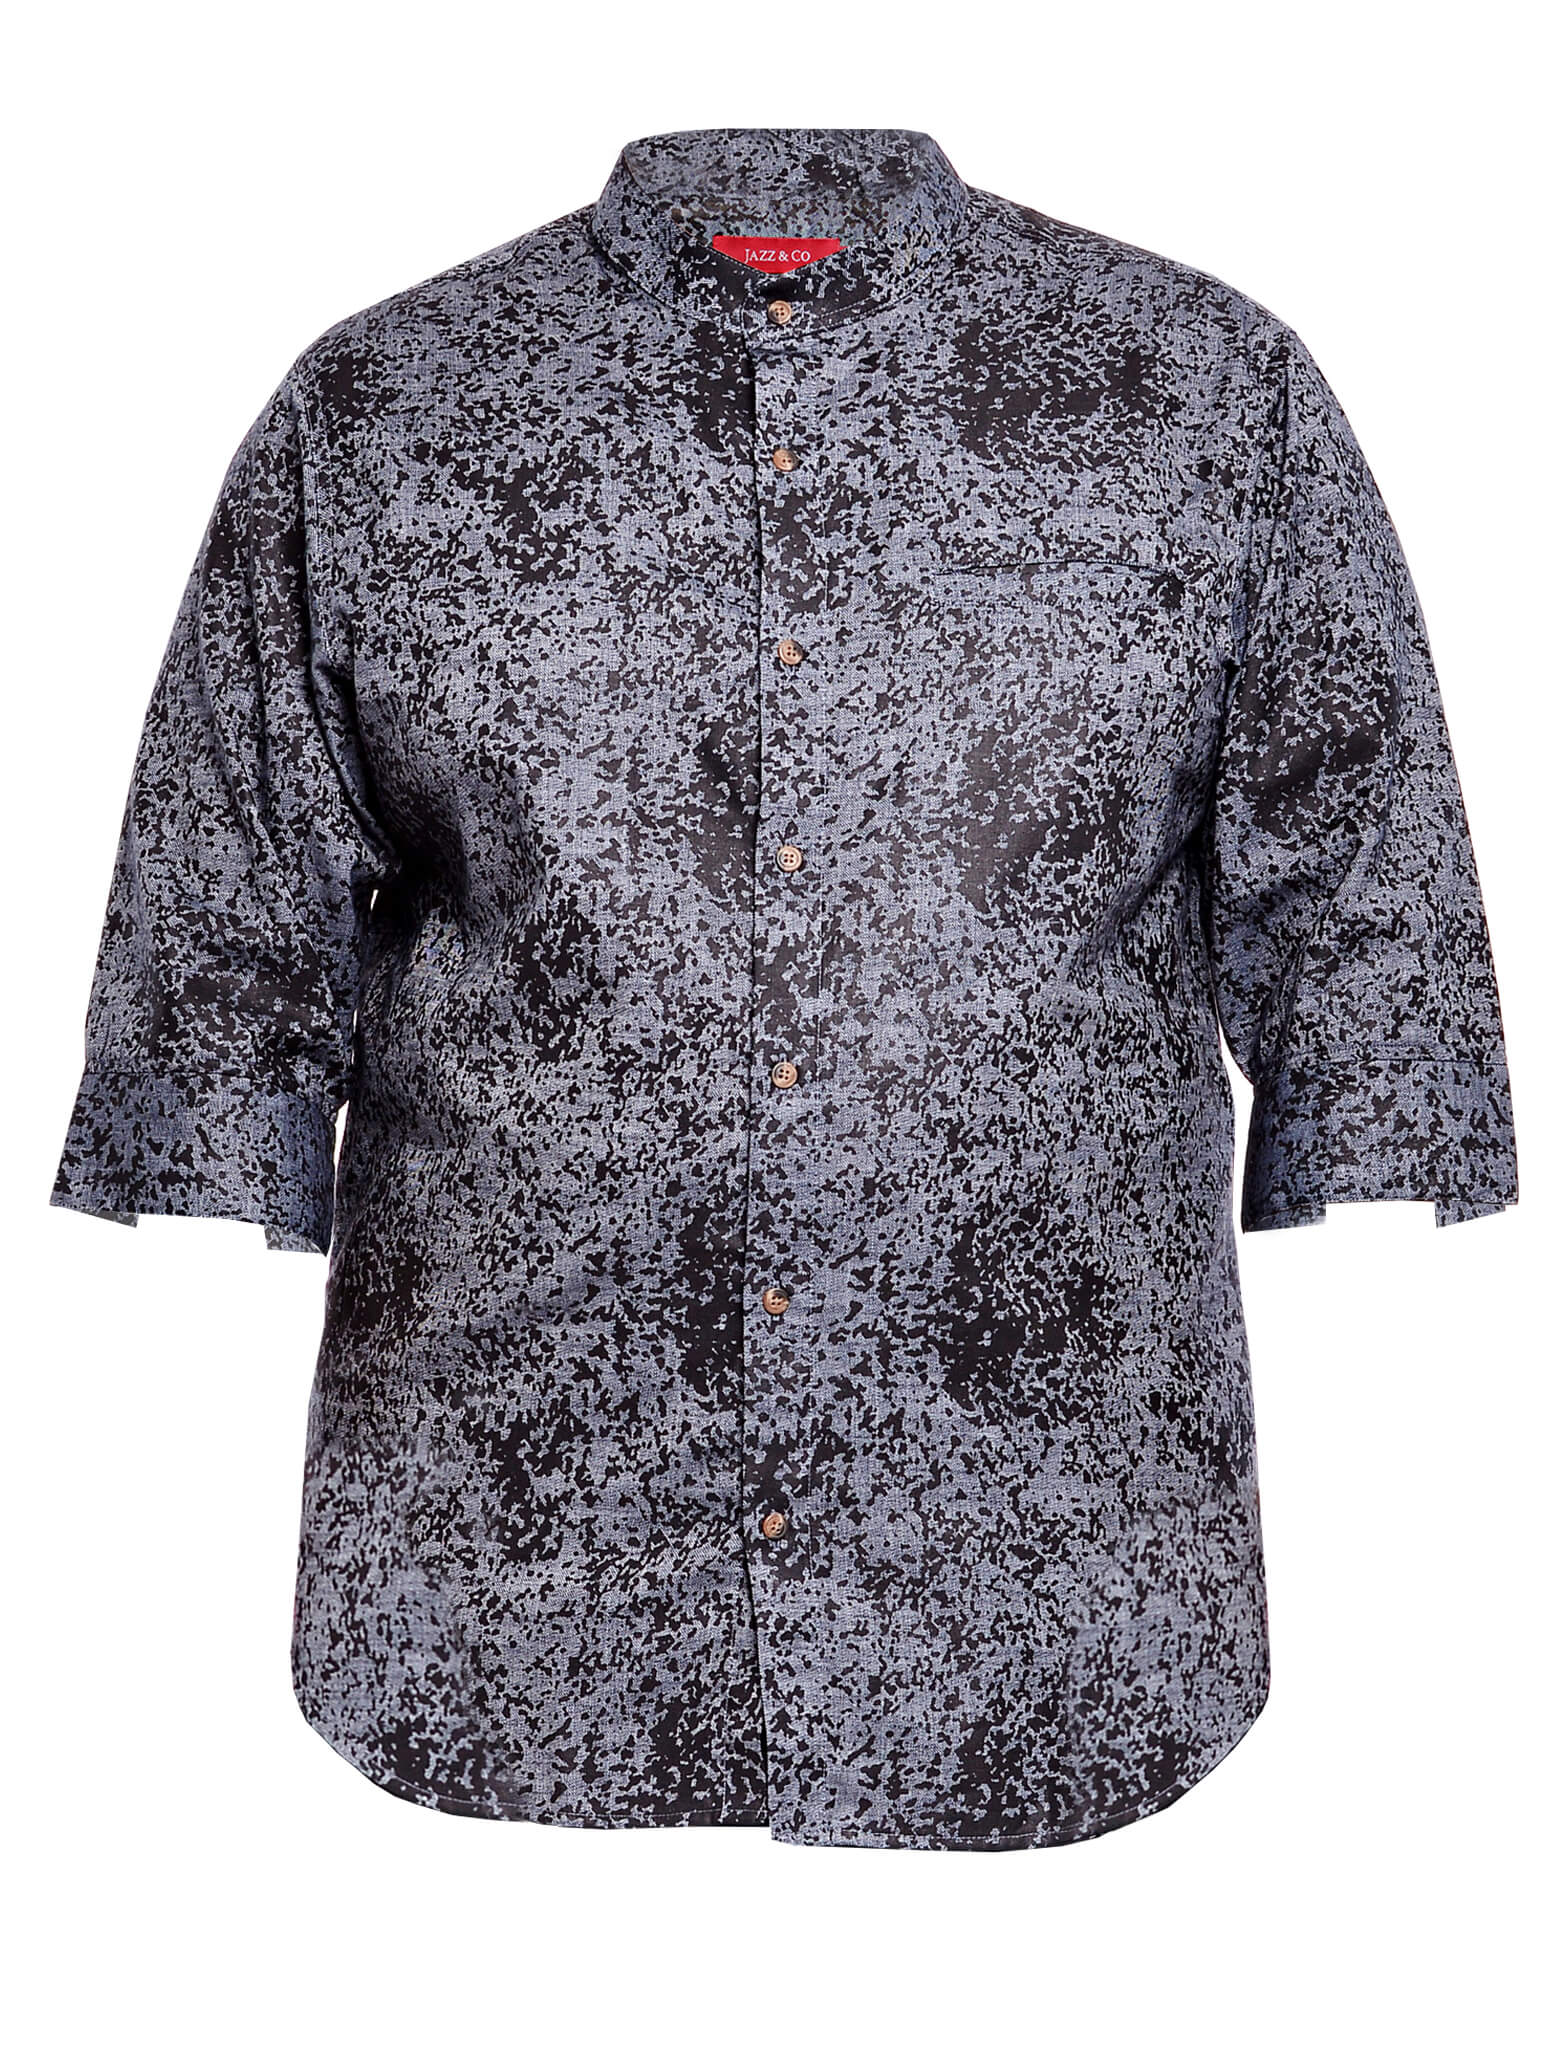 Jazz & Co Men Plus Size 3/4 sleeve printed chambray shirt in charcoal